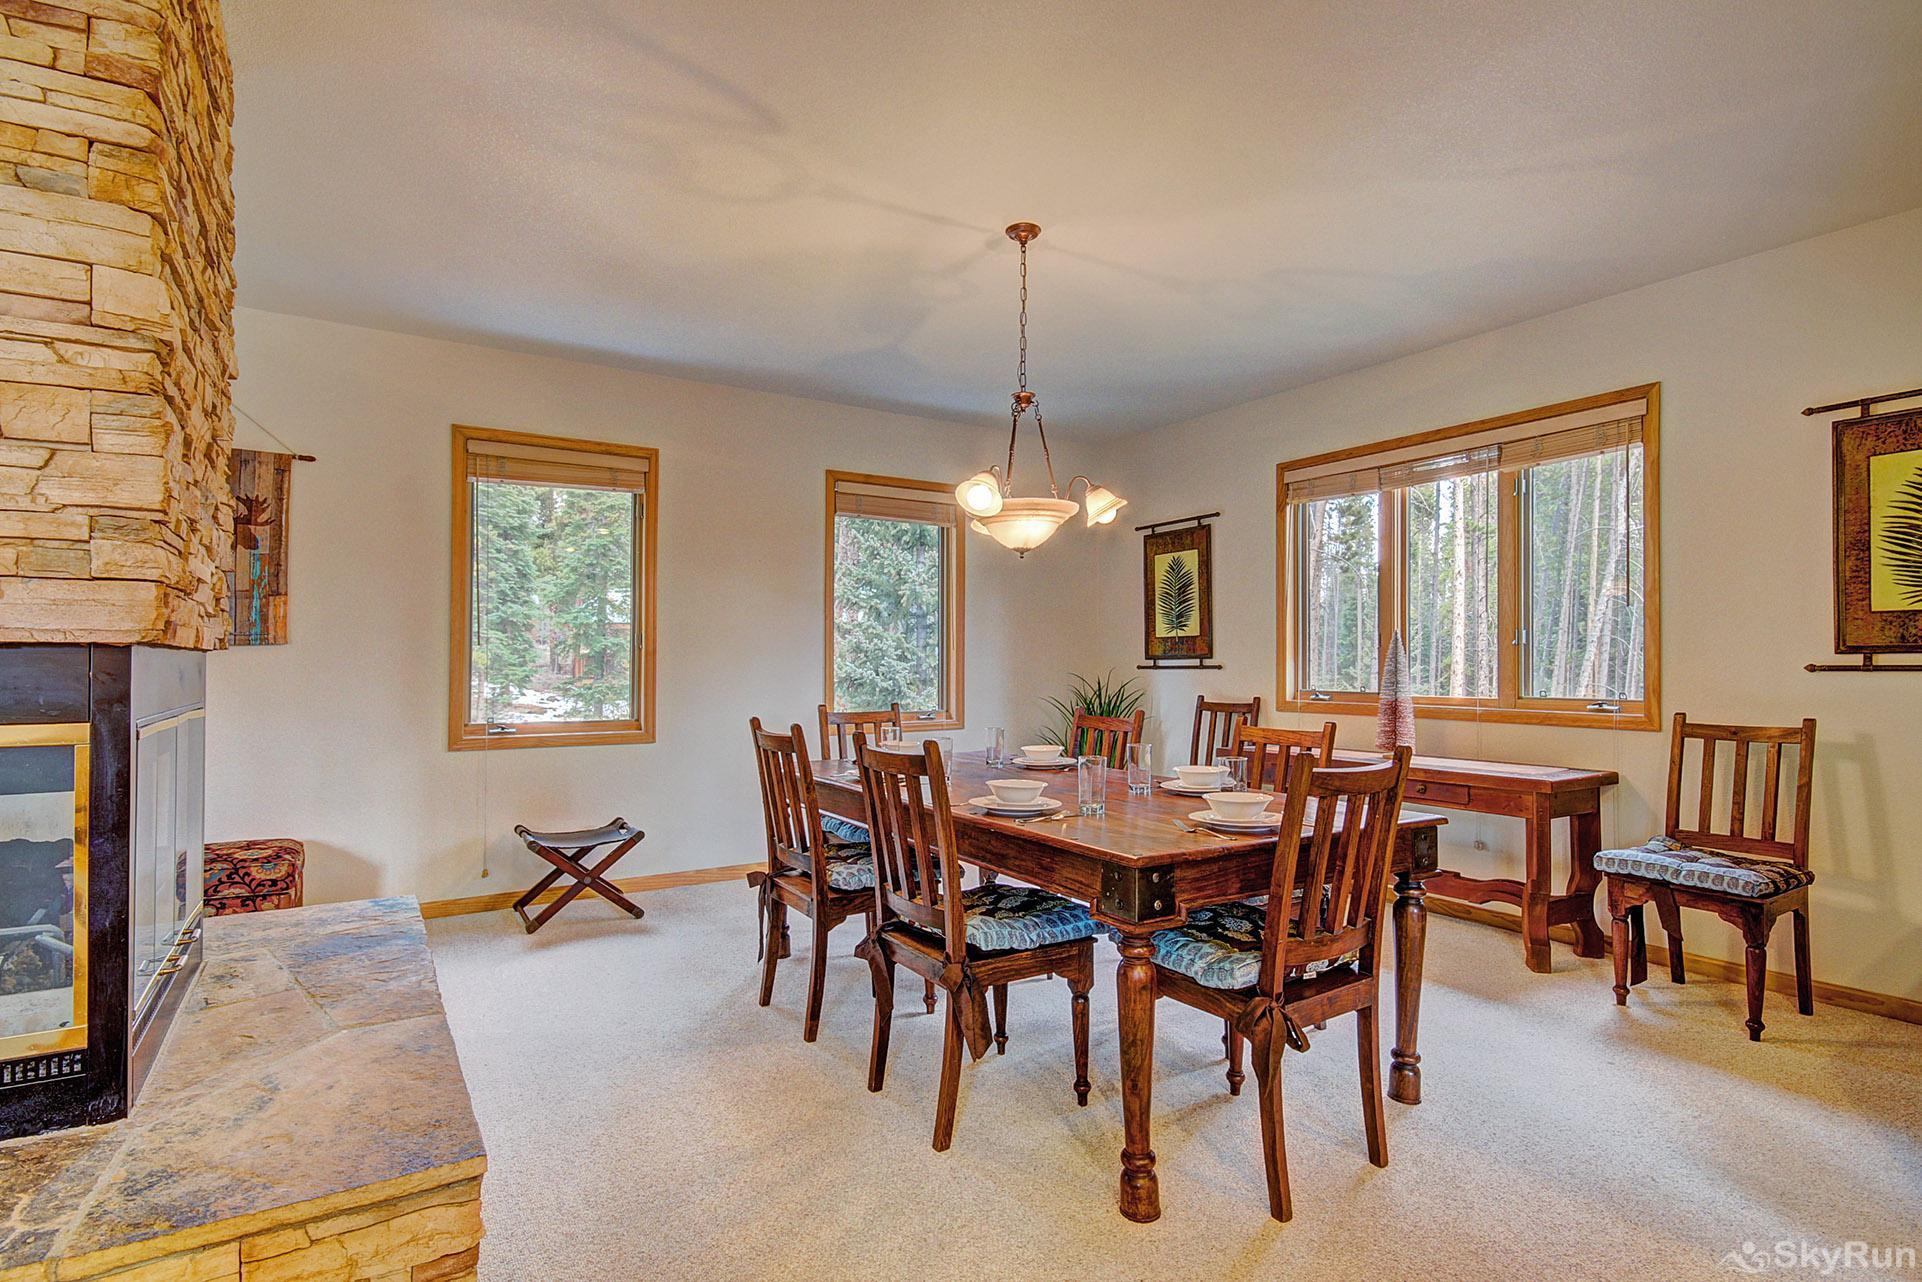 Secret Trail Lodge Dining table with seating for 8, additional seating for 3 at bar